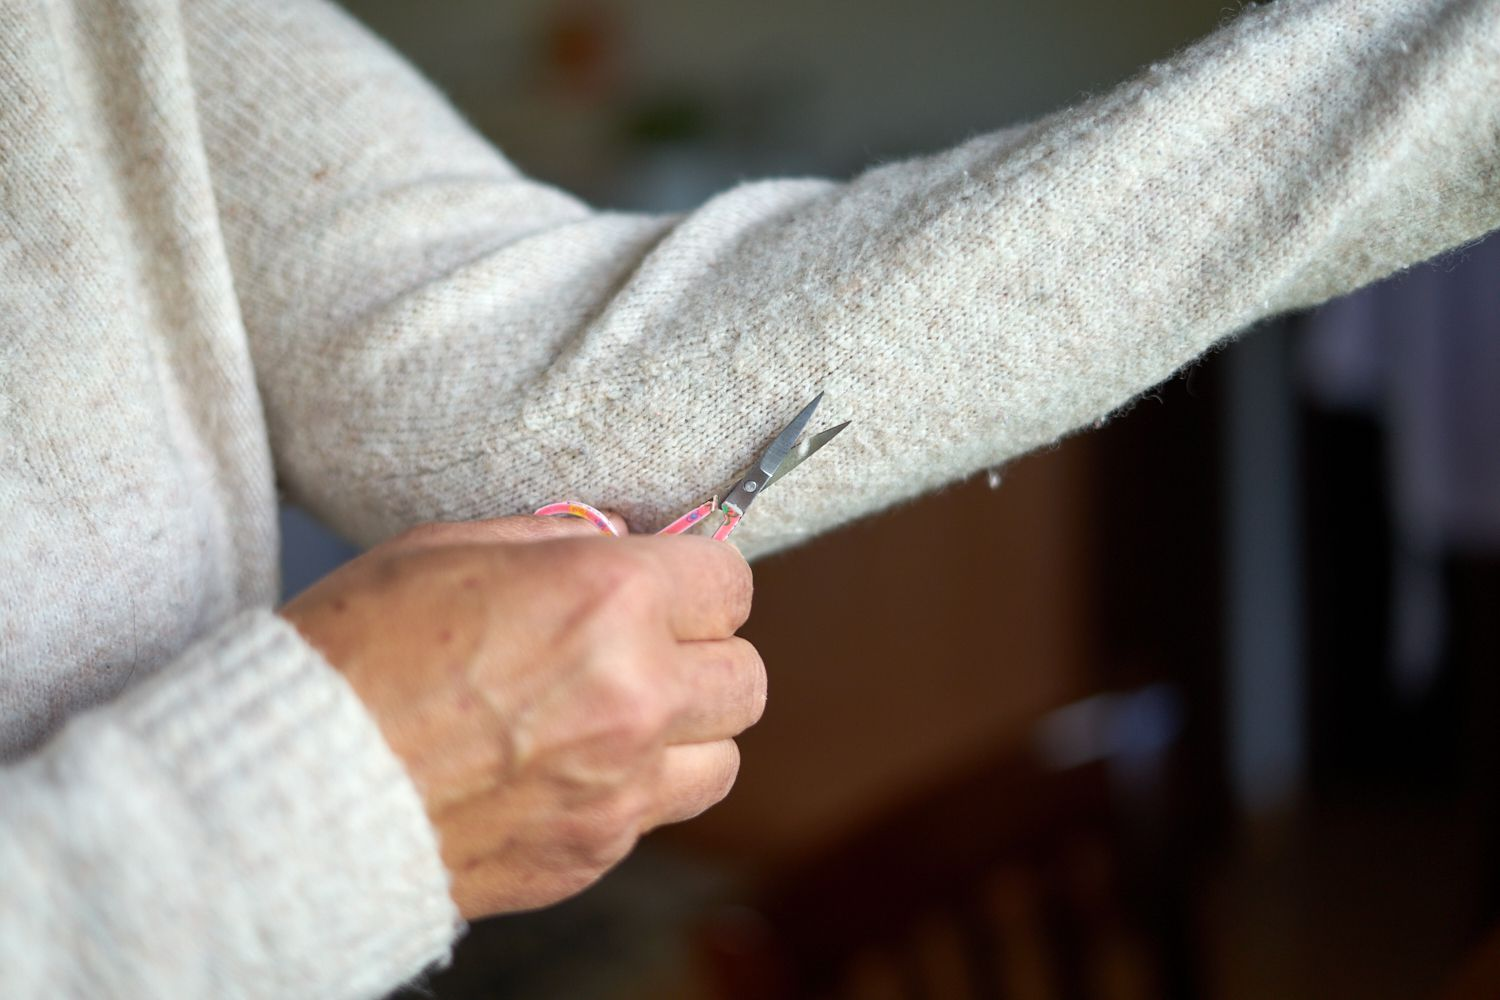 person wearing cream sweater carefully cuts pills off outstretched arm with small scisscors